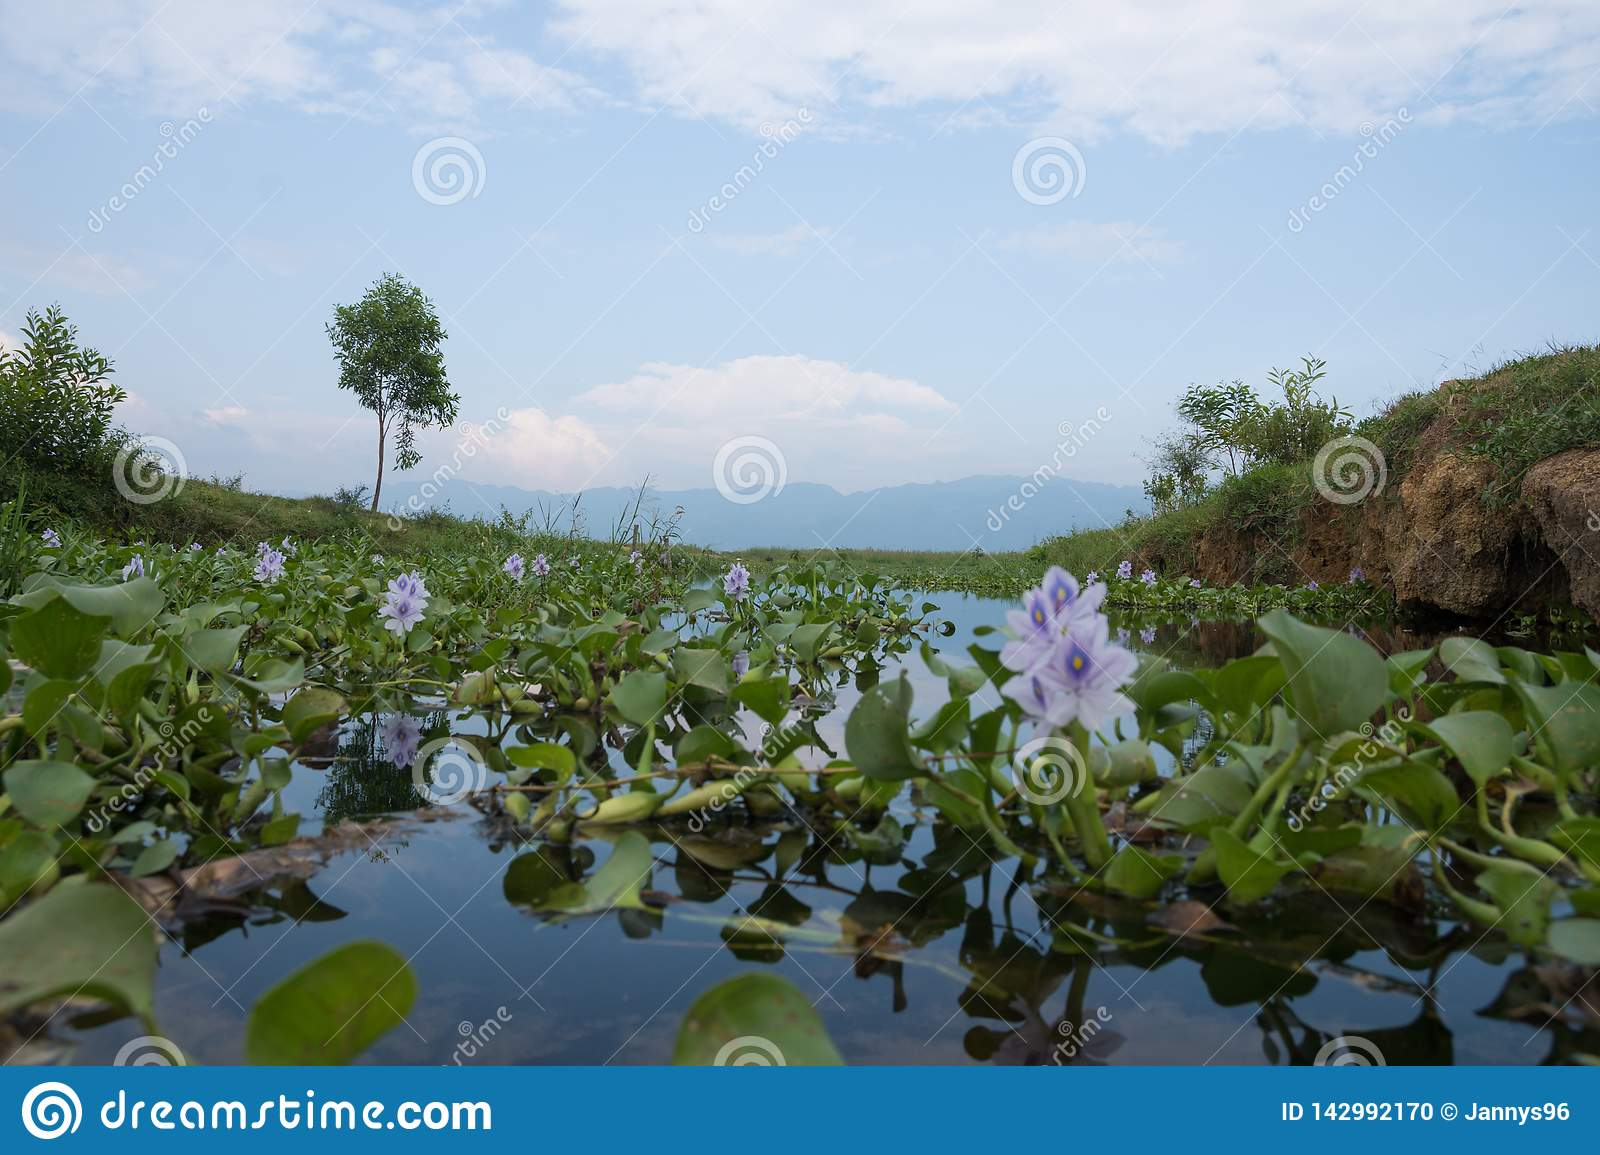 View on inle lake with purple flower seen from frog perspective in myanmar